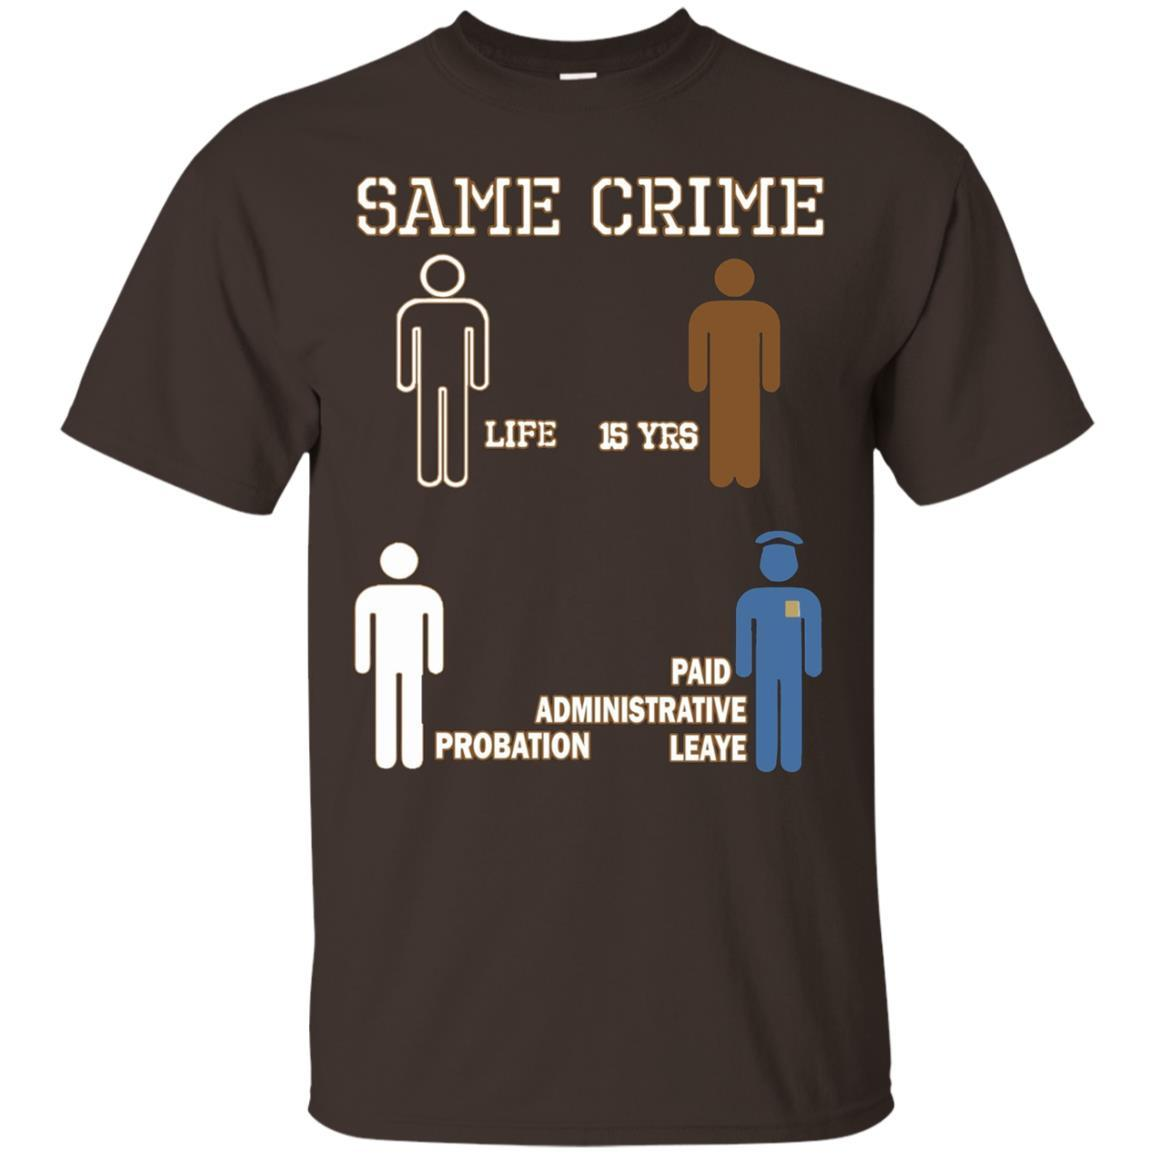 Same Crime T-Shirt Dark Chocolate / 5XL